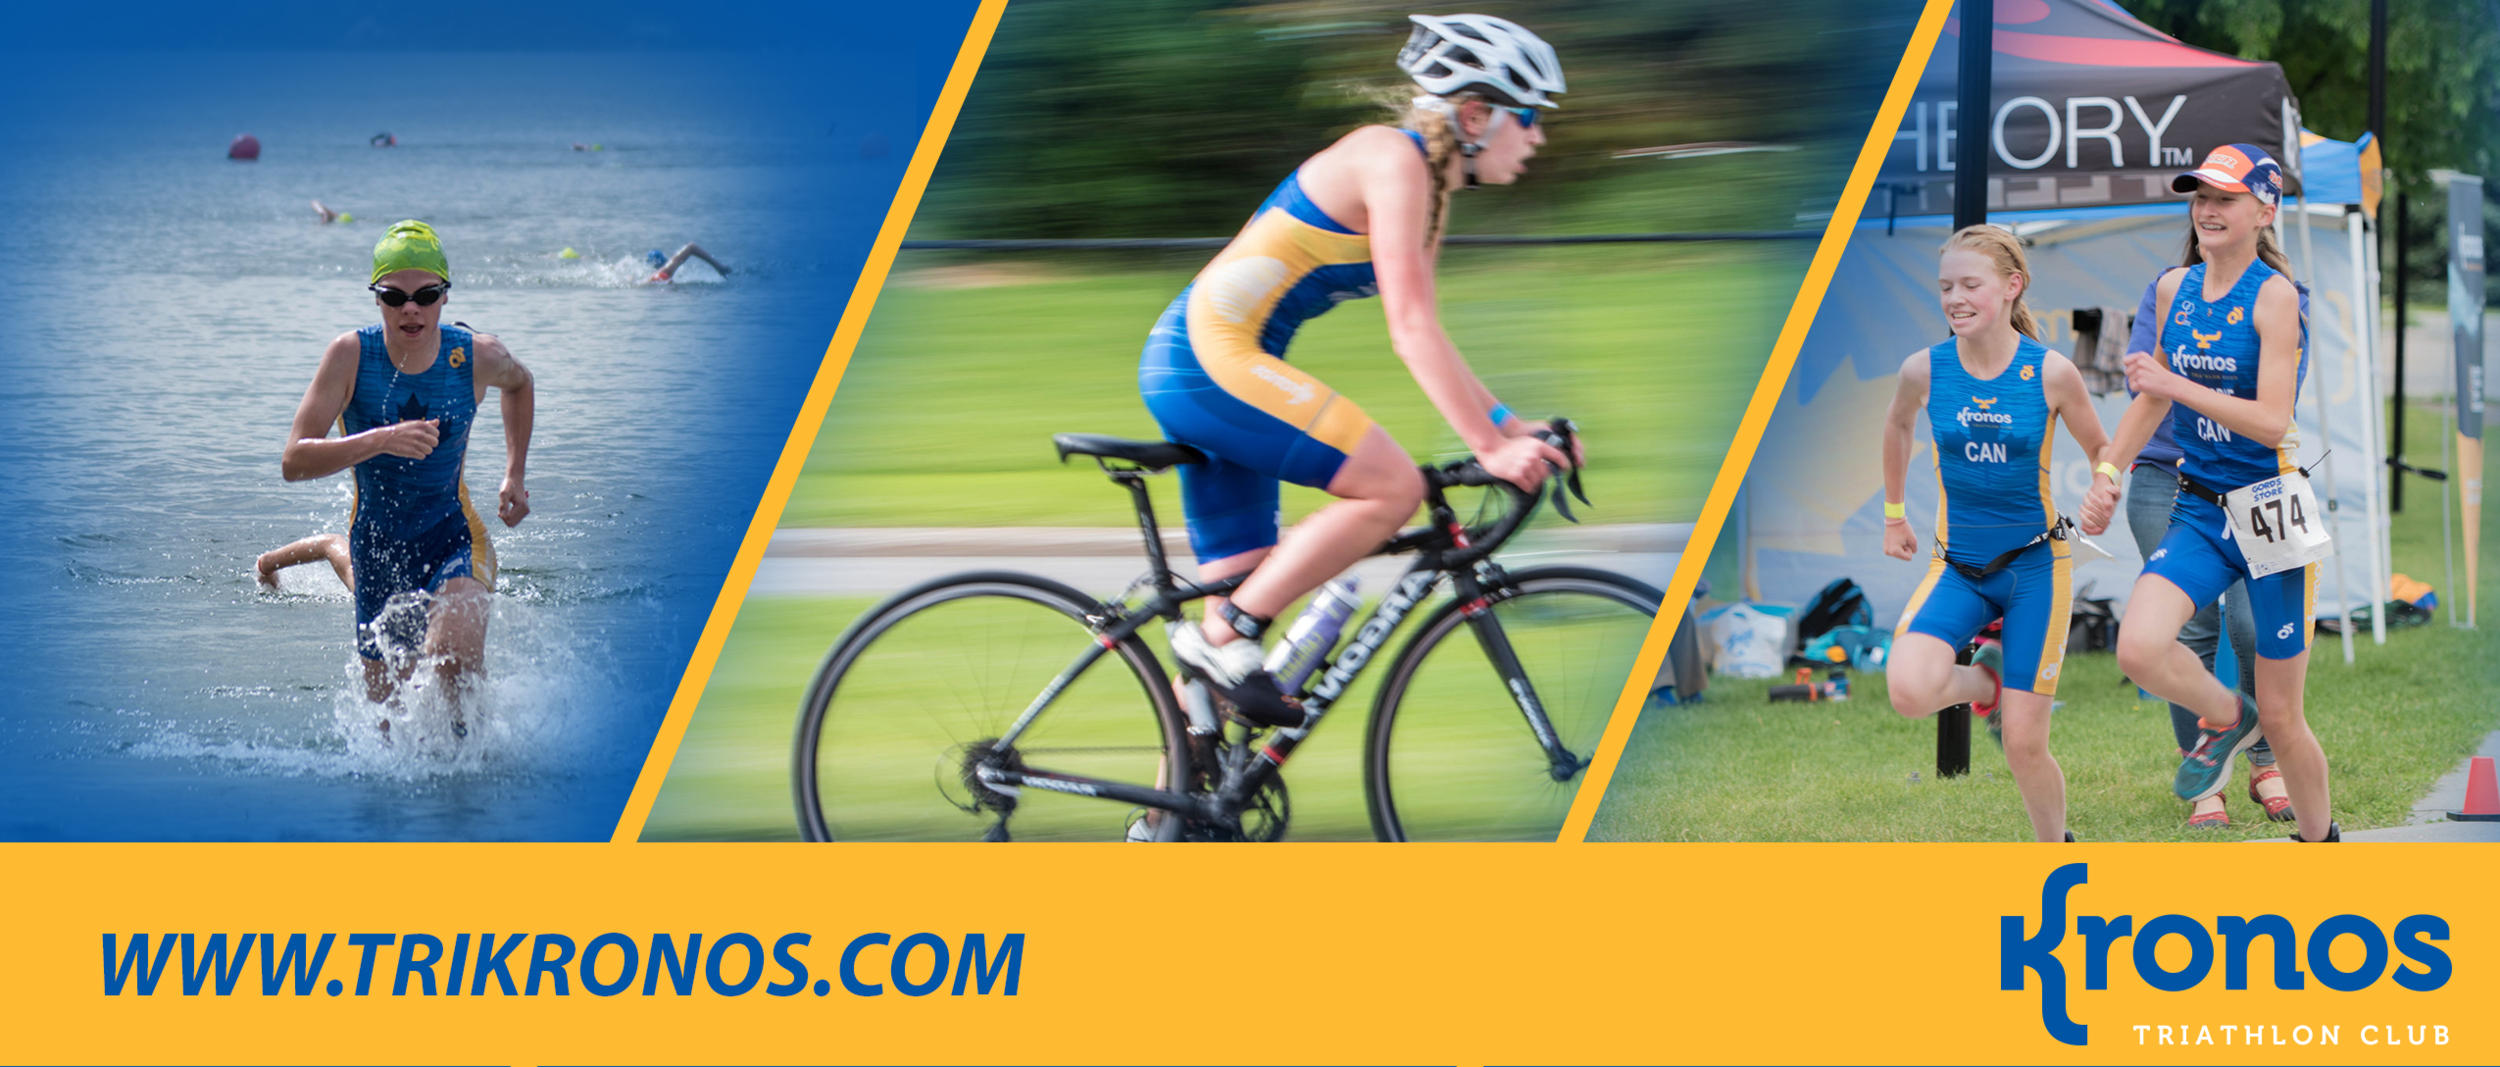 Kronos Triathlon Club offers triathlon training programs for ages 8 - 88. Check out our website for more information!   www.trikronos.com